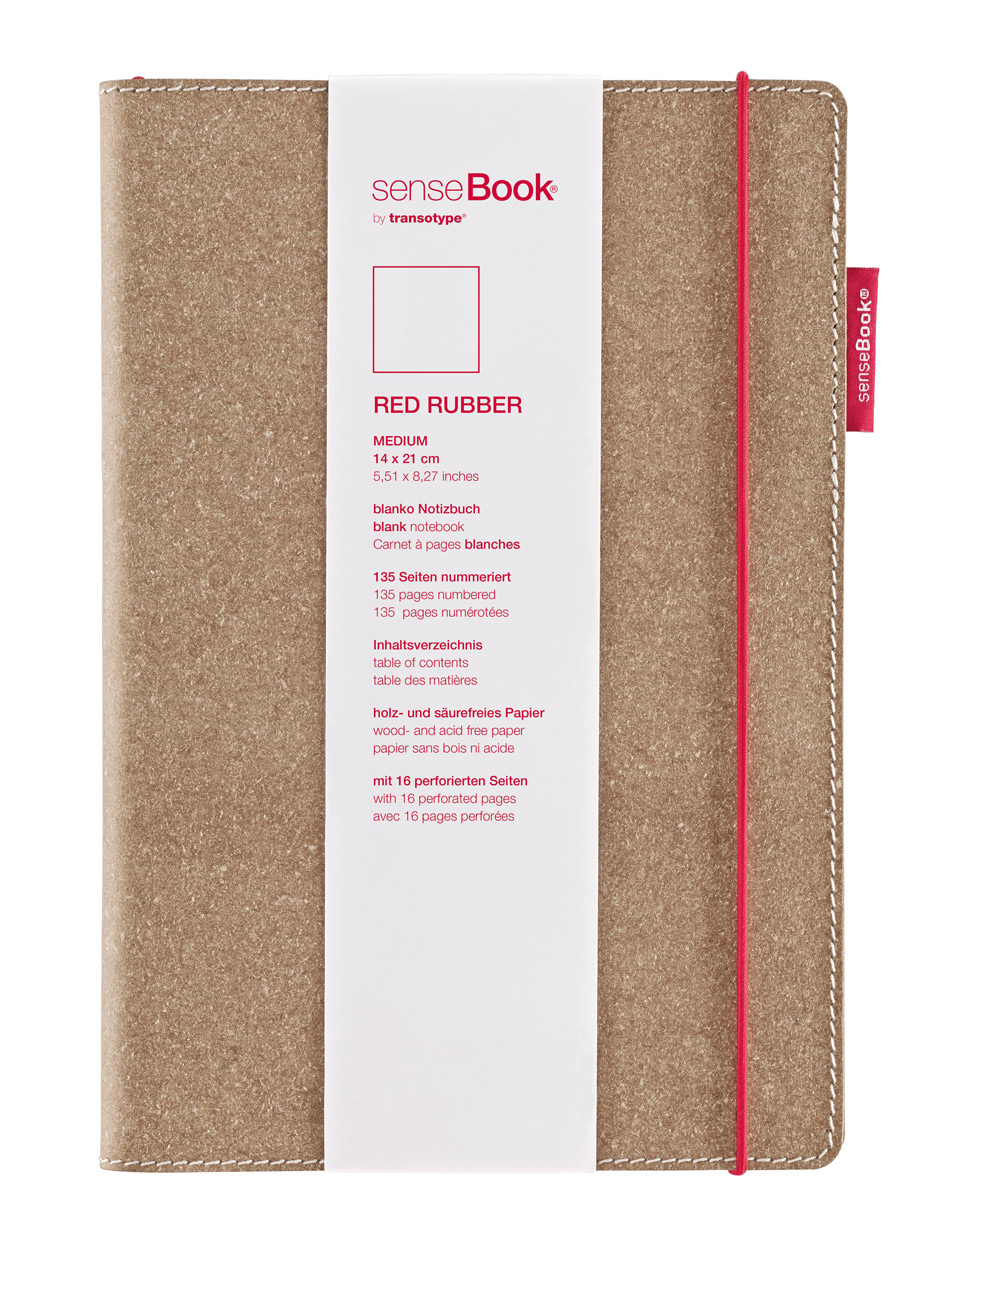 Sensebook Red Rubber 6X8 Blank